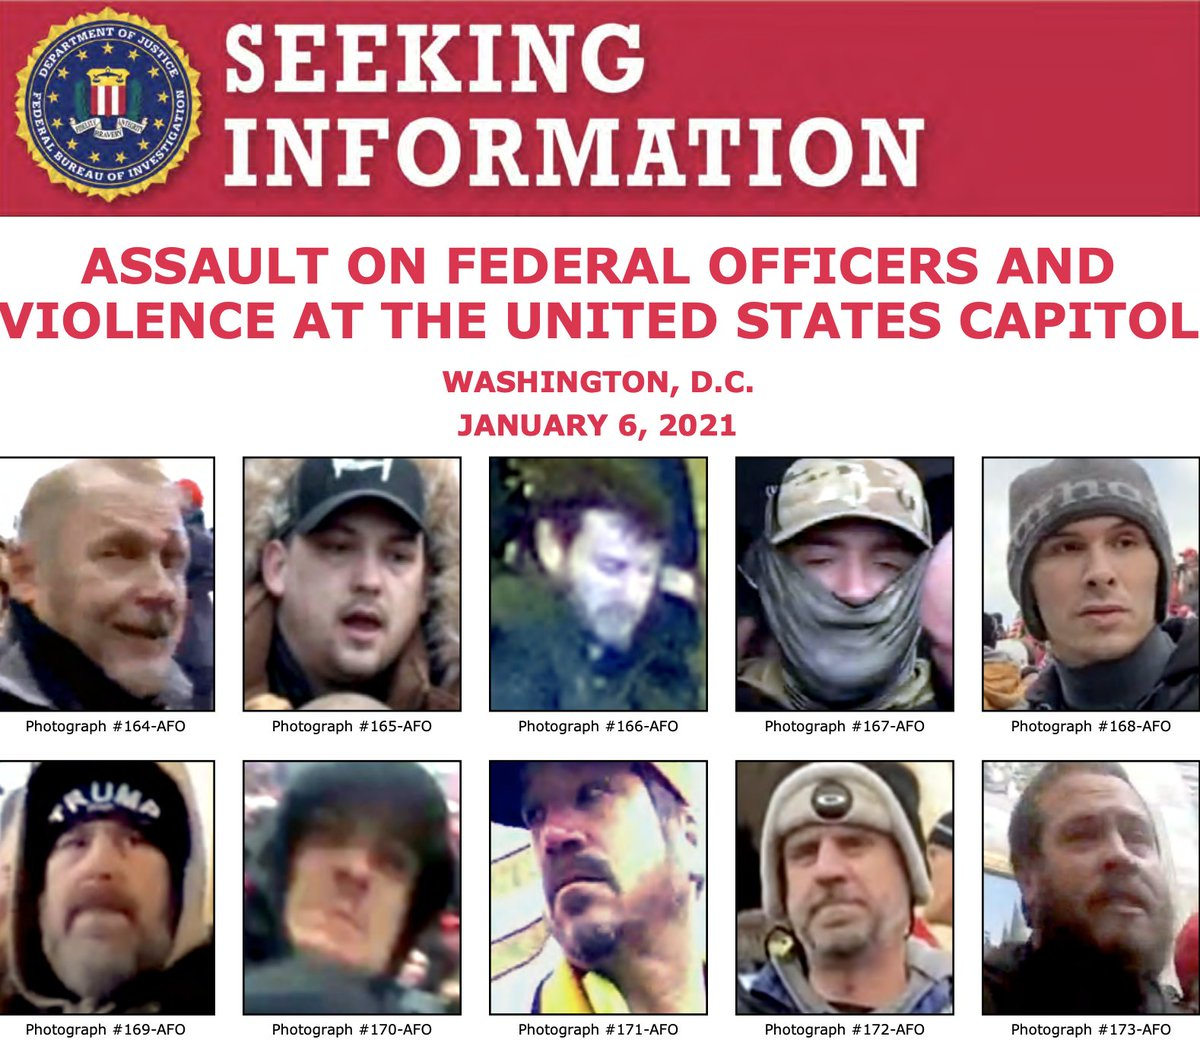 Can you help the #FBI identify anyone in these photos? We're still seeking to identify individuals who unlawfully entered the U.S. Capitol and assaulted federal officers on January 6. If you see someone you know, submit a tip to .